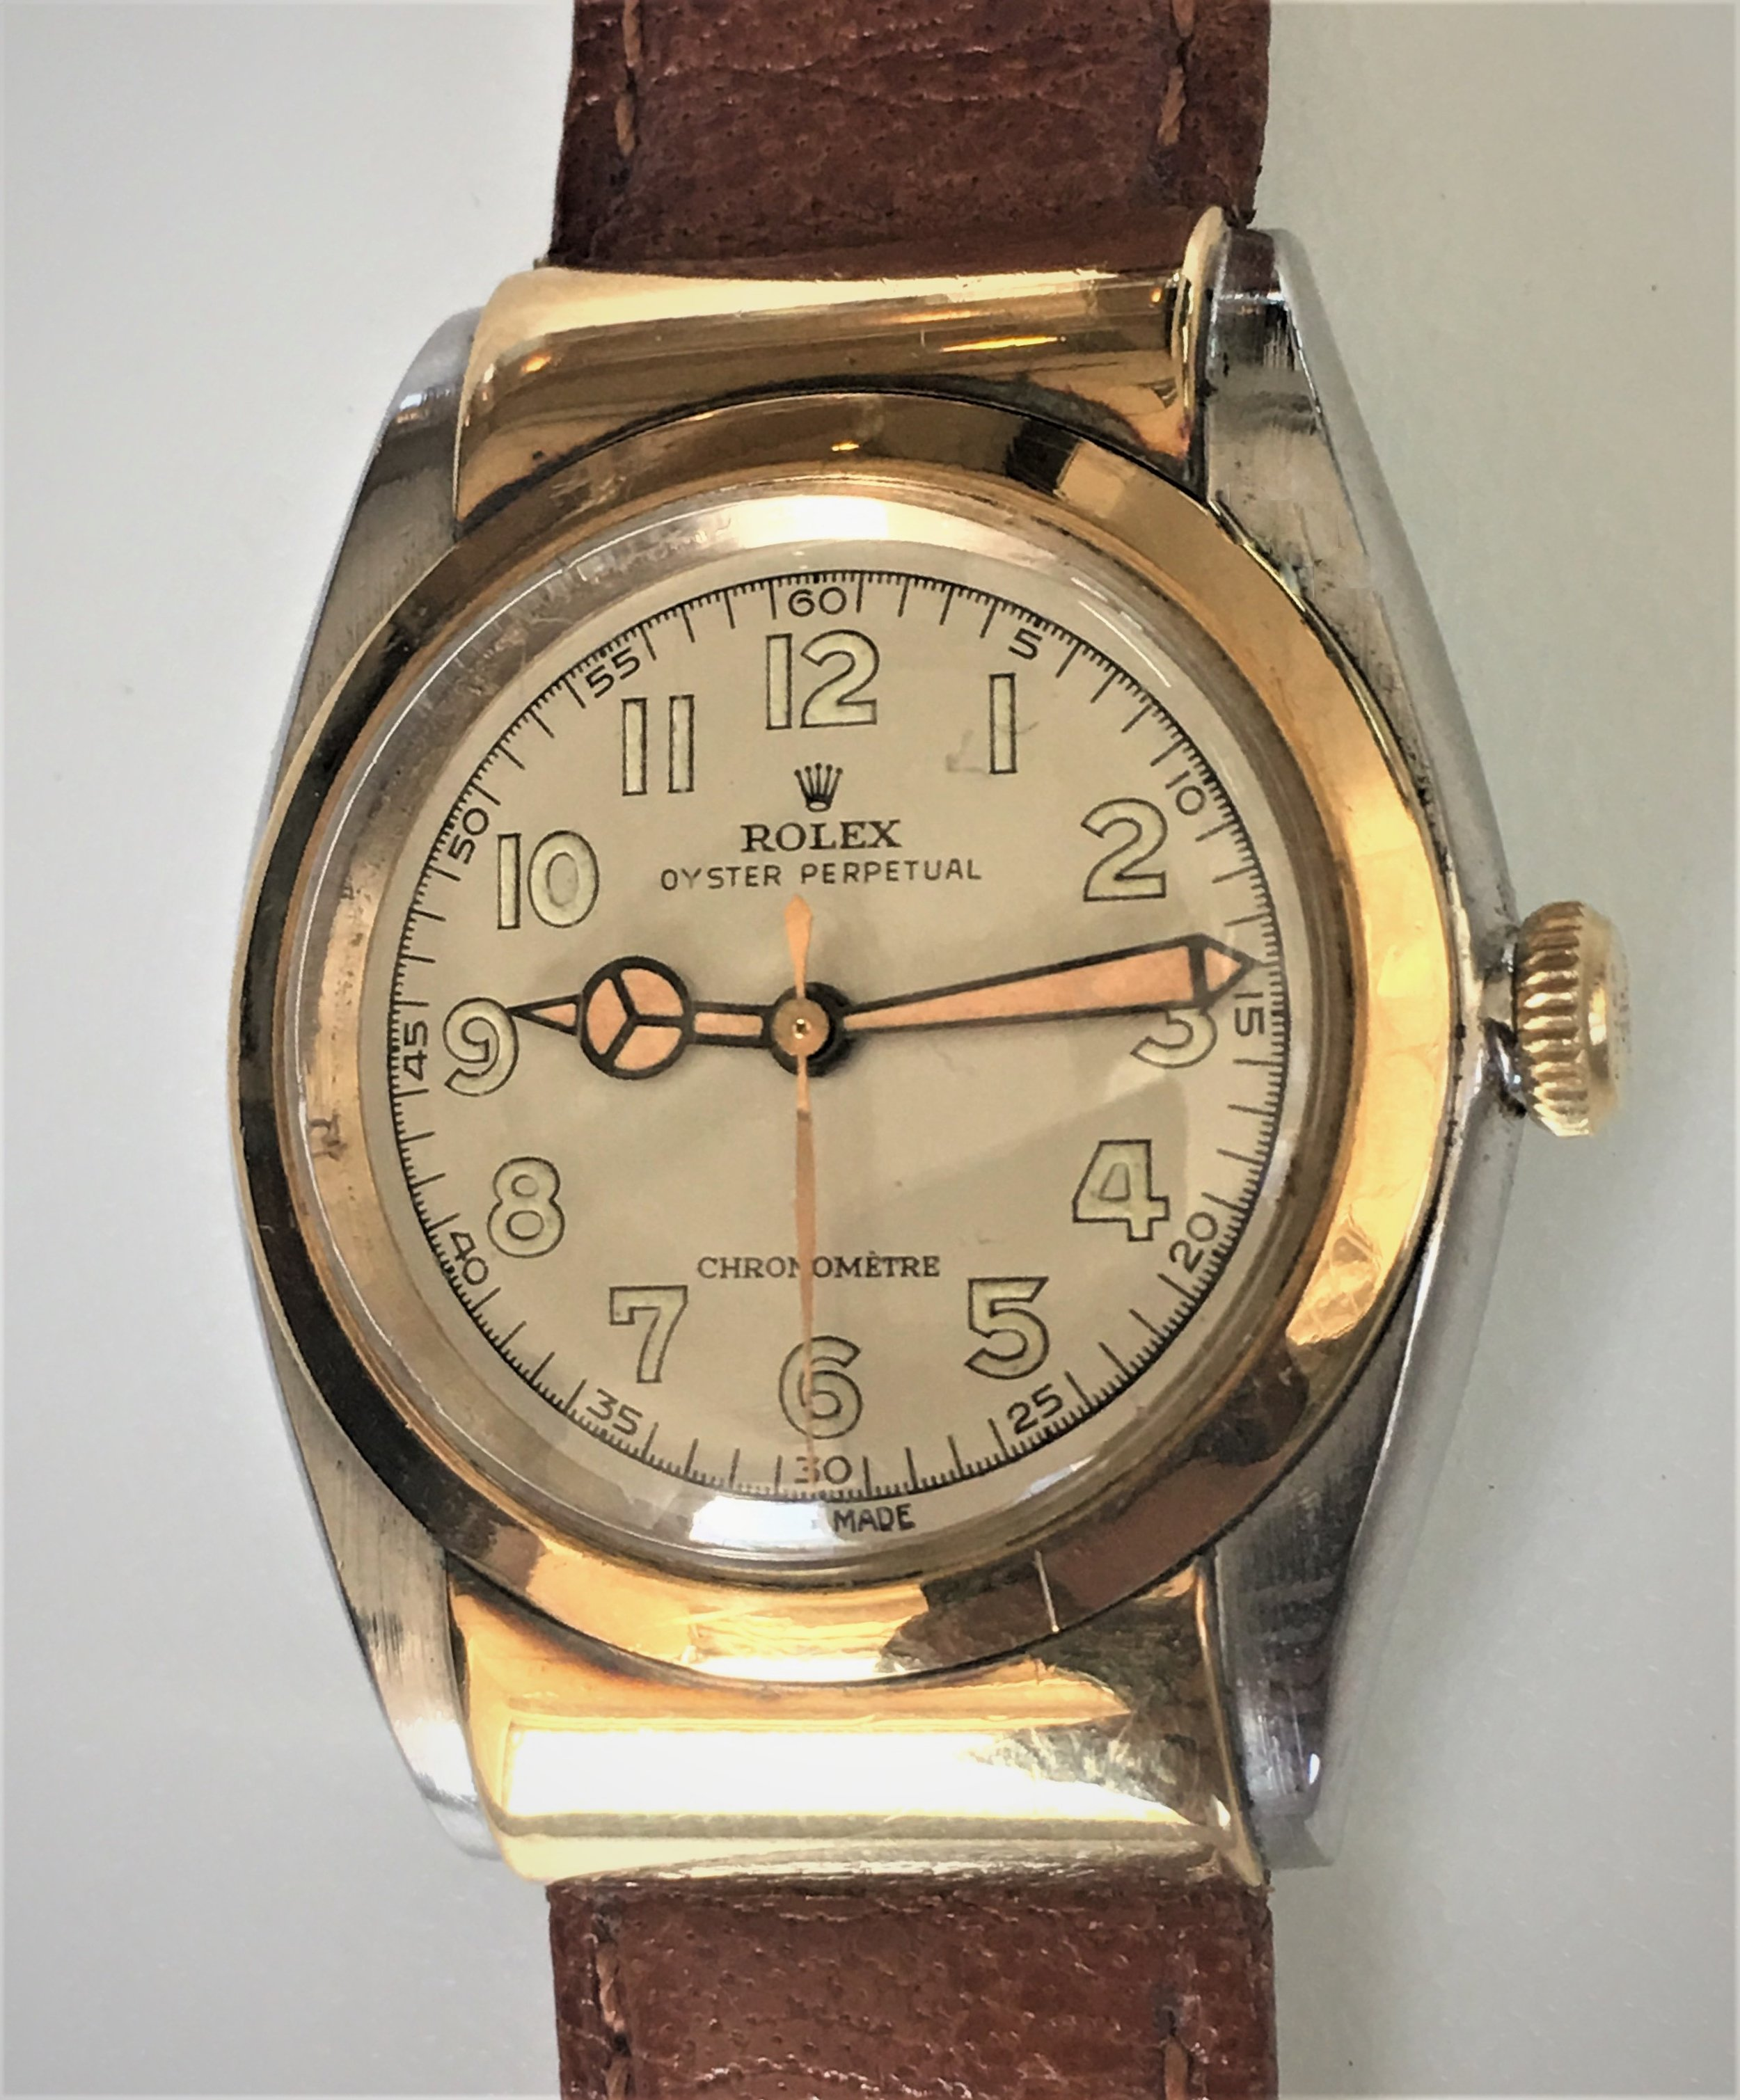 Watch Rolex Chronometre Oyster Perpetual. Tampa Jewelry Store Watch Repair